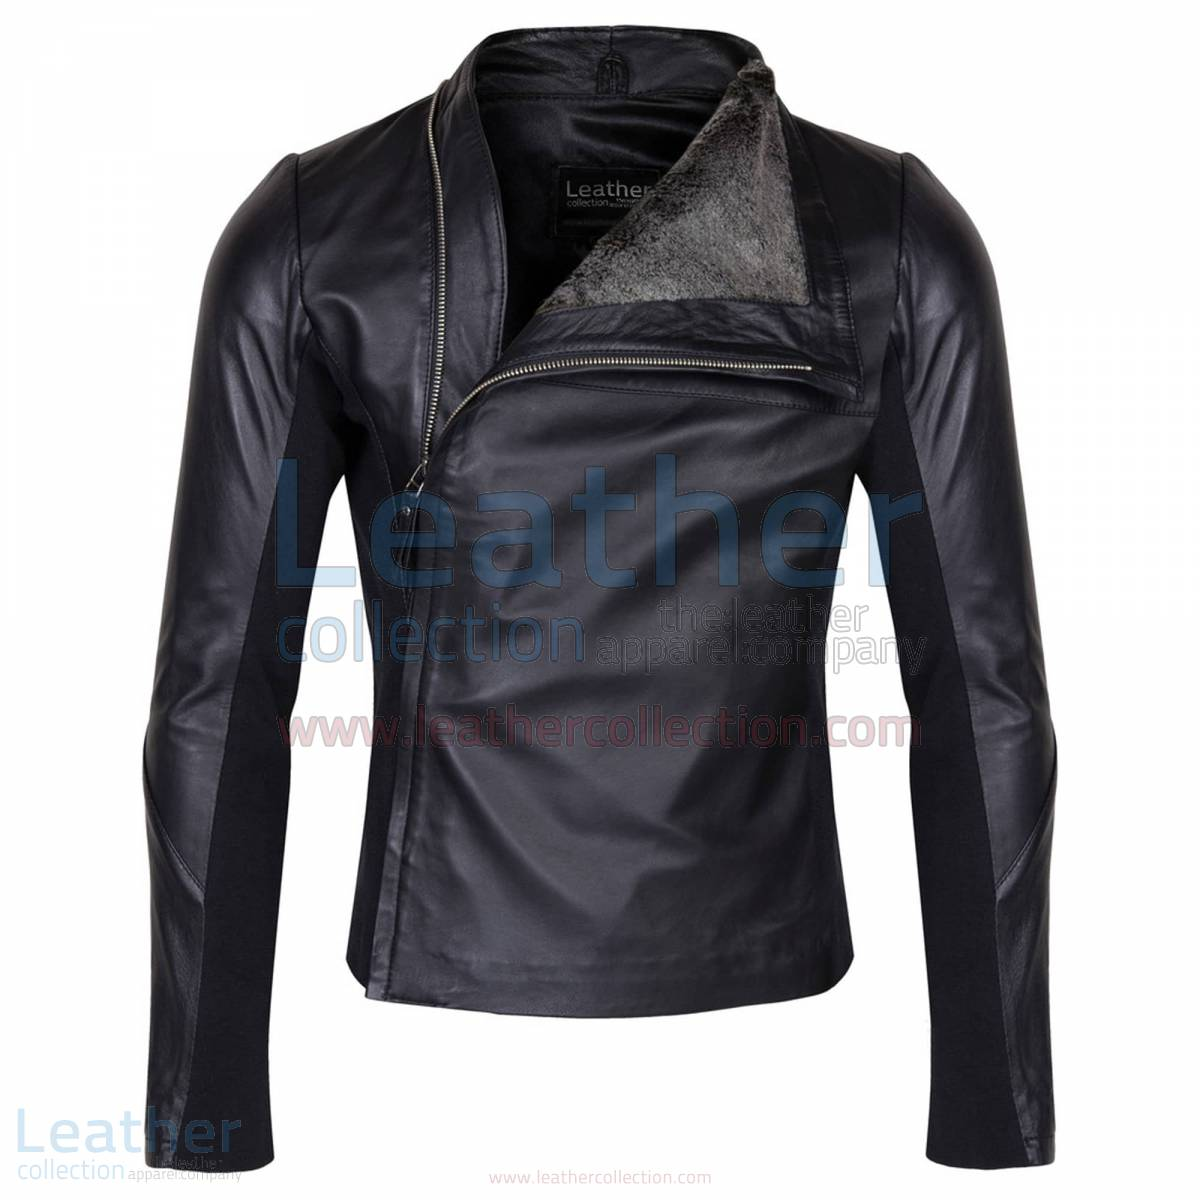 jacket with fur lining